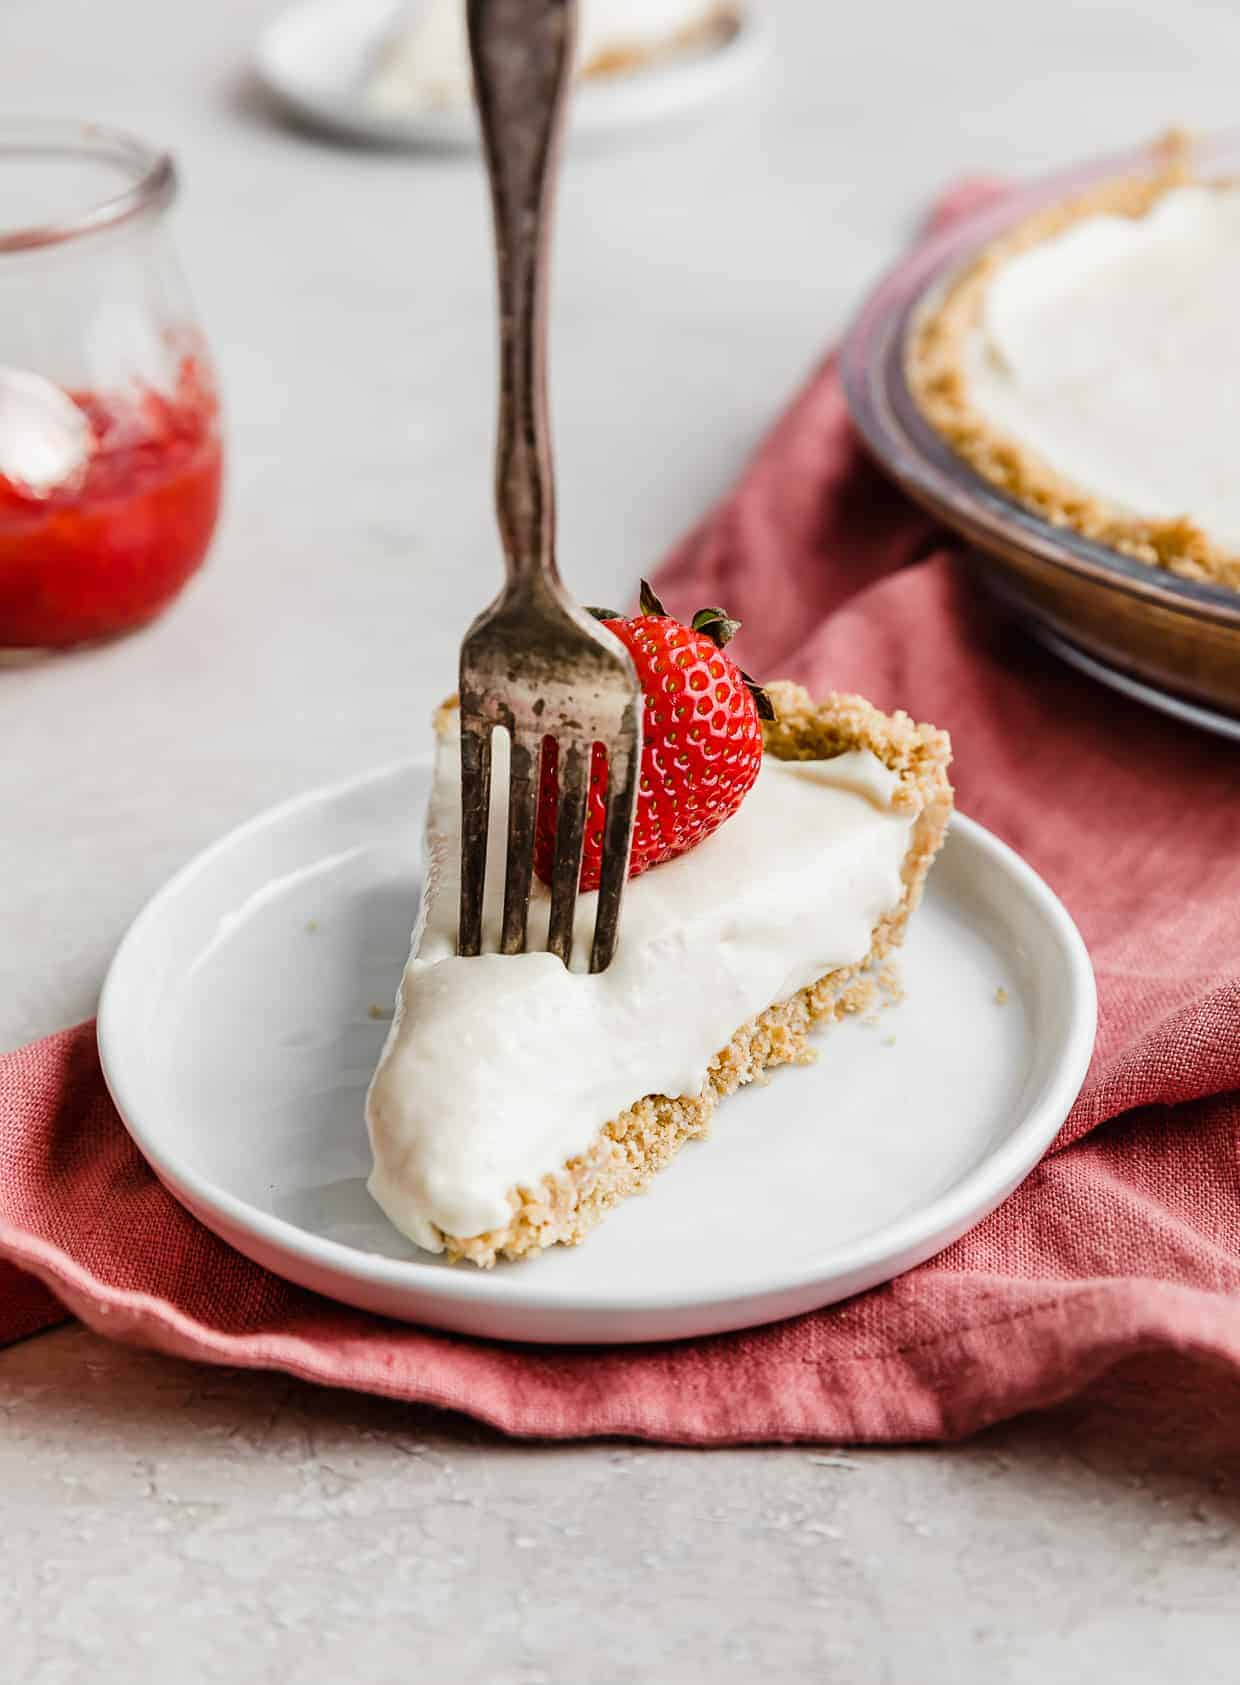 A fork poking into a slice of no-bake cheesecake on a white plate.